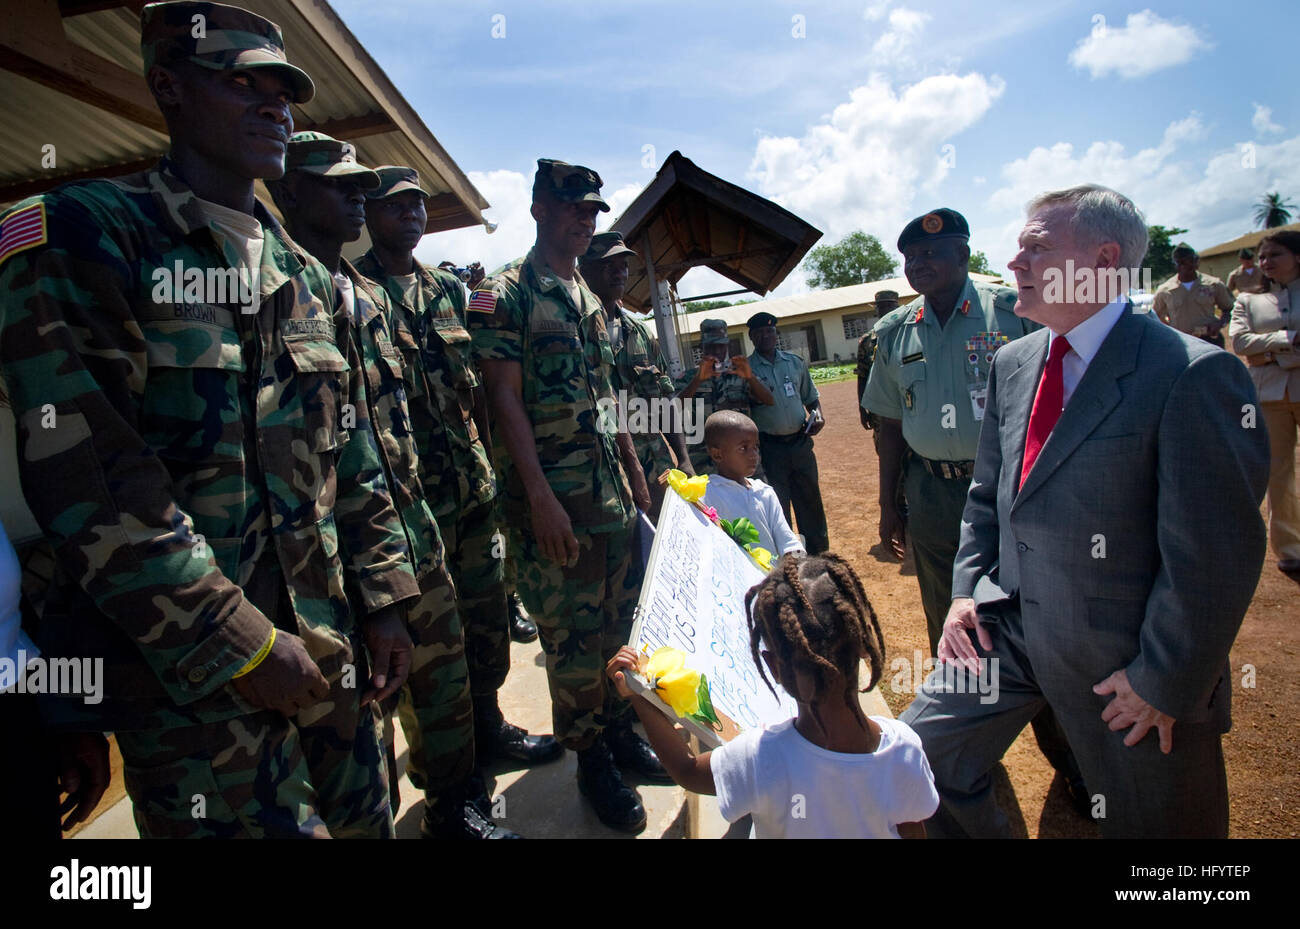 110531-N-UH963-107 MONROVIA, Liberia (May 31, 2011) Secretary of the Navy (SECNAV) the Honorable Ray Mabus meets - Stock Image